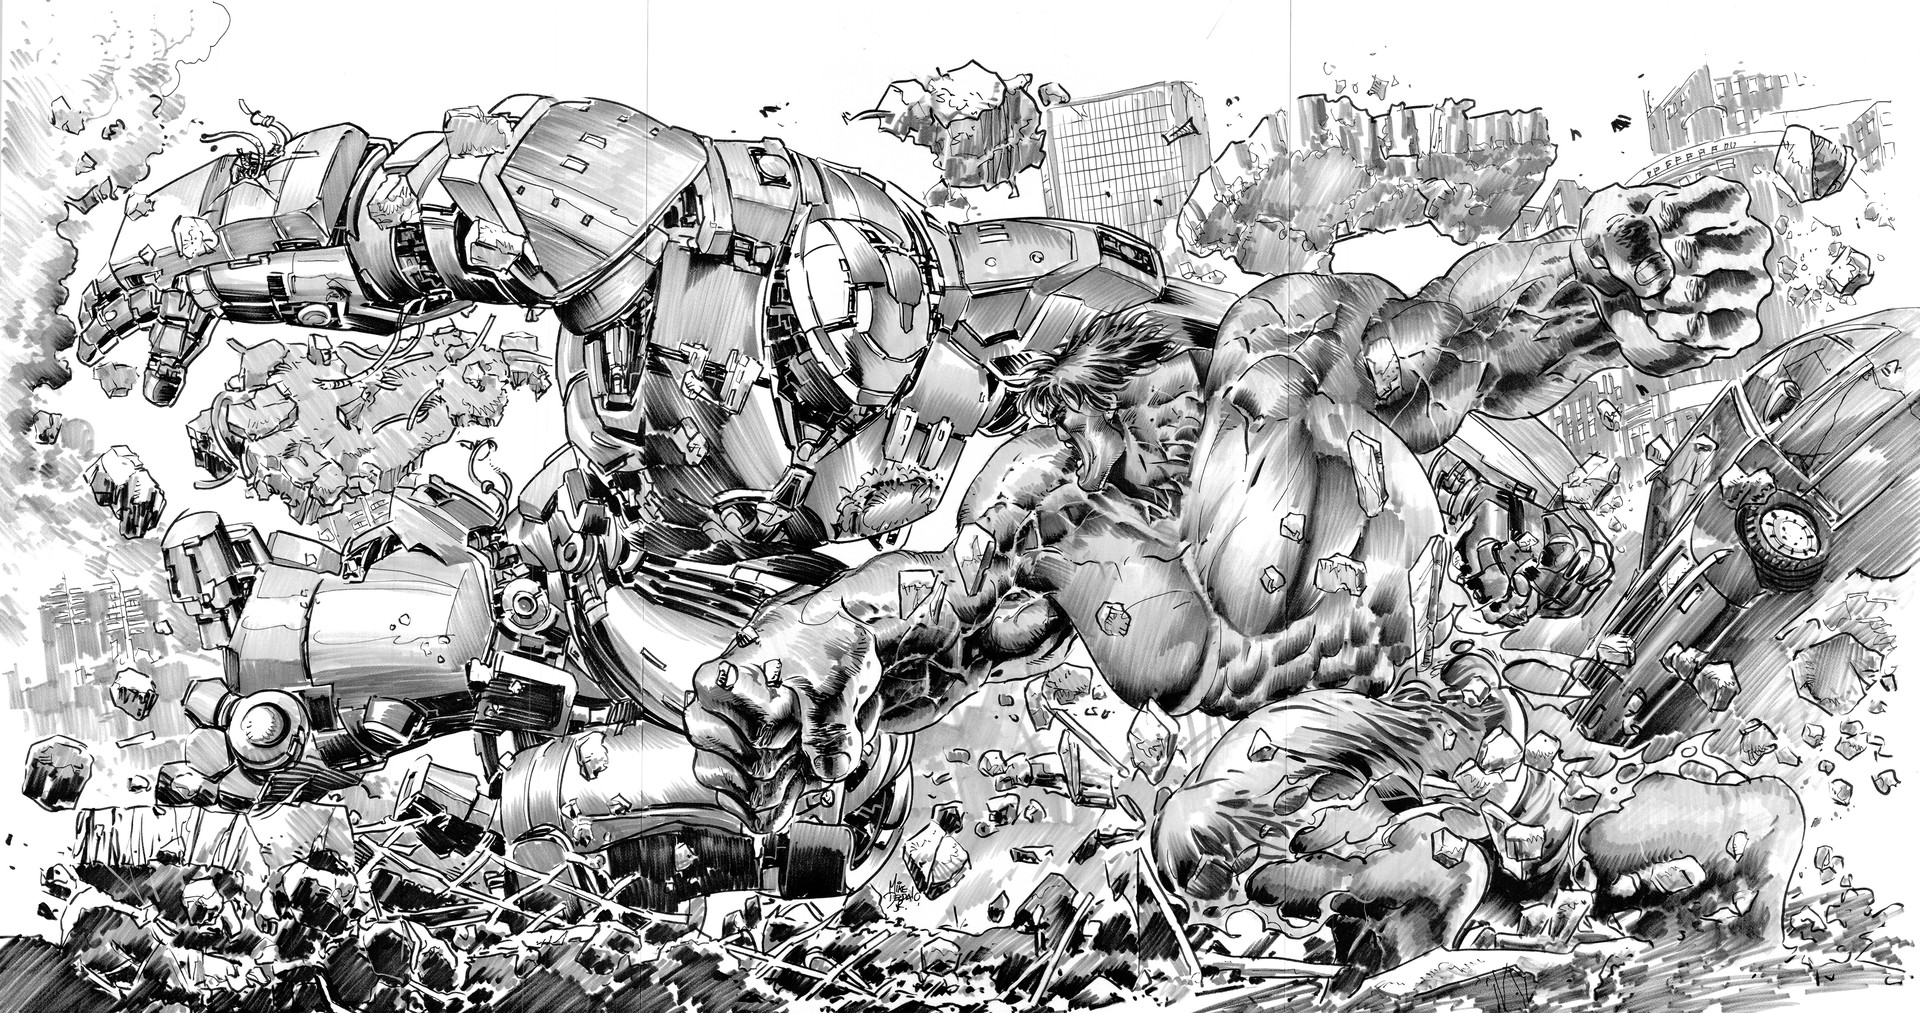 Line art and Inks. by Mike deodato.